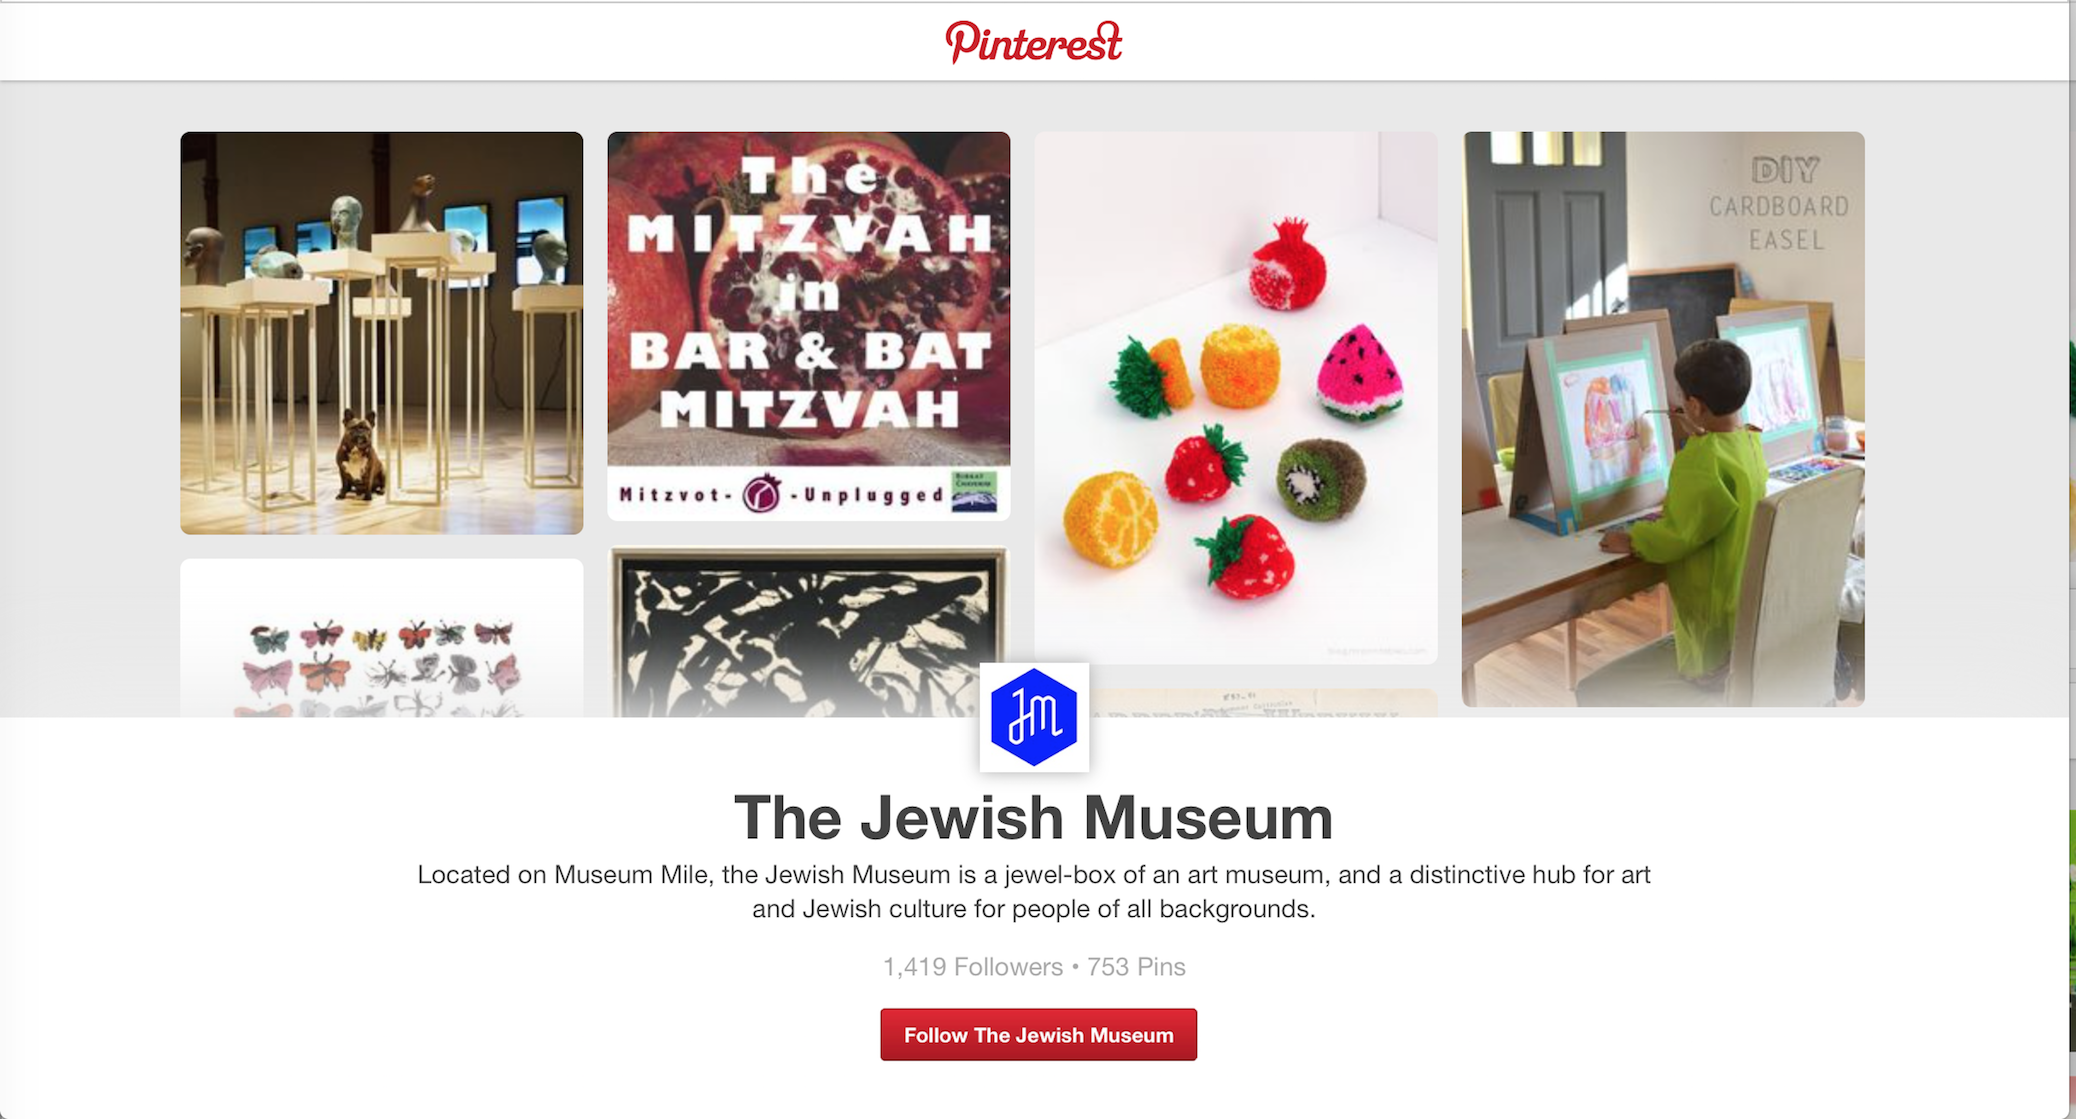 Joseph K. Levene Fine Art, Ltd. and Susan Cushing welcome The Jewish Museum to the Museums on Pinterest pinboard; follow 16 prestigious museums on Pinterest: https://www.pinterest.com/follow/jklfa/museums/